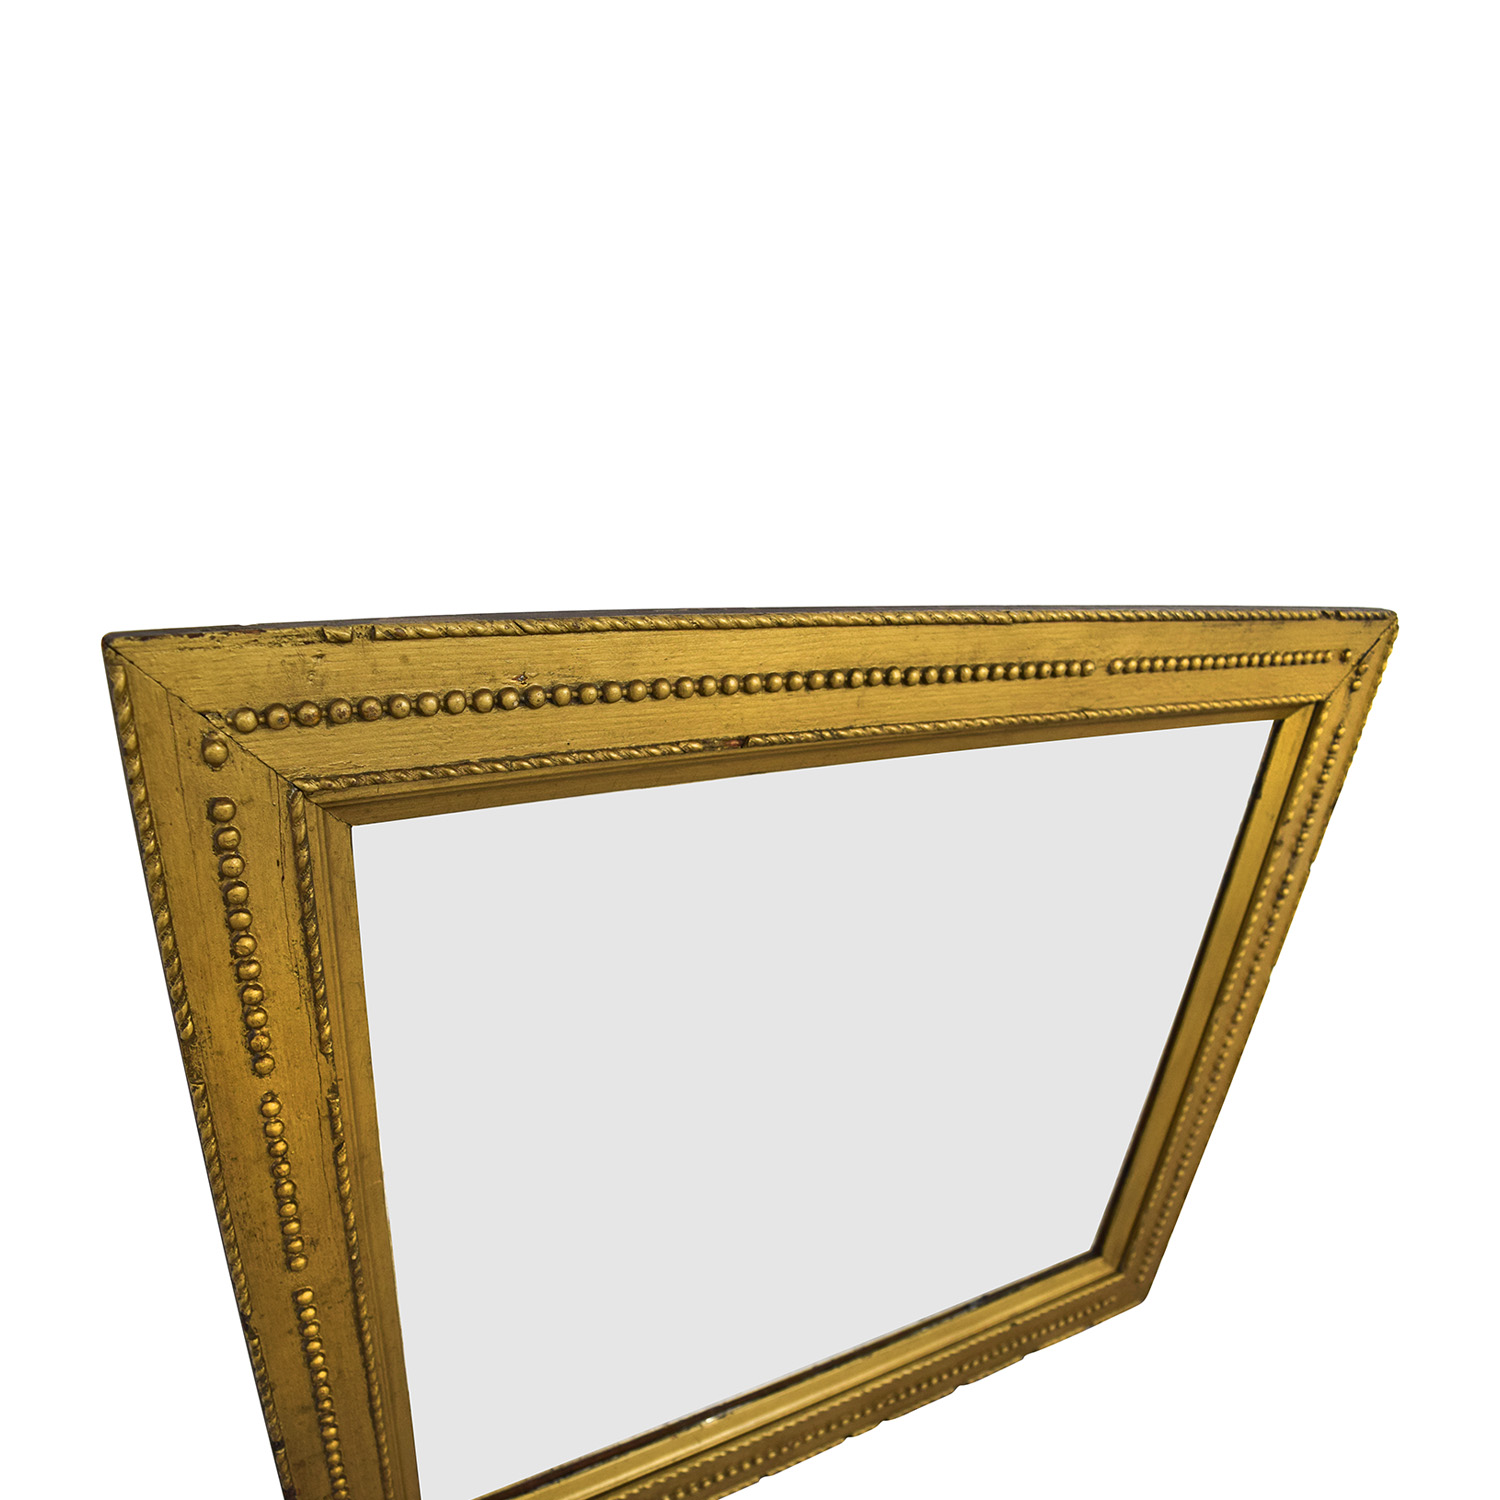 Rustic Gold Framed Mirror used